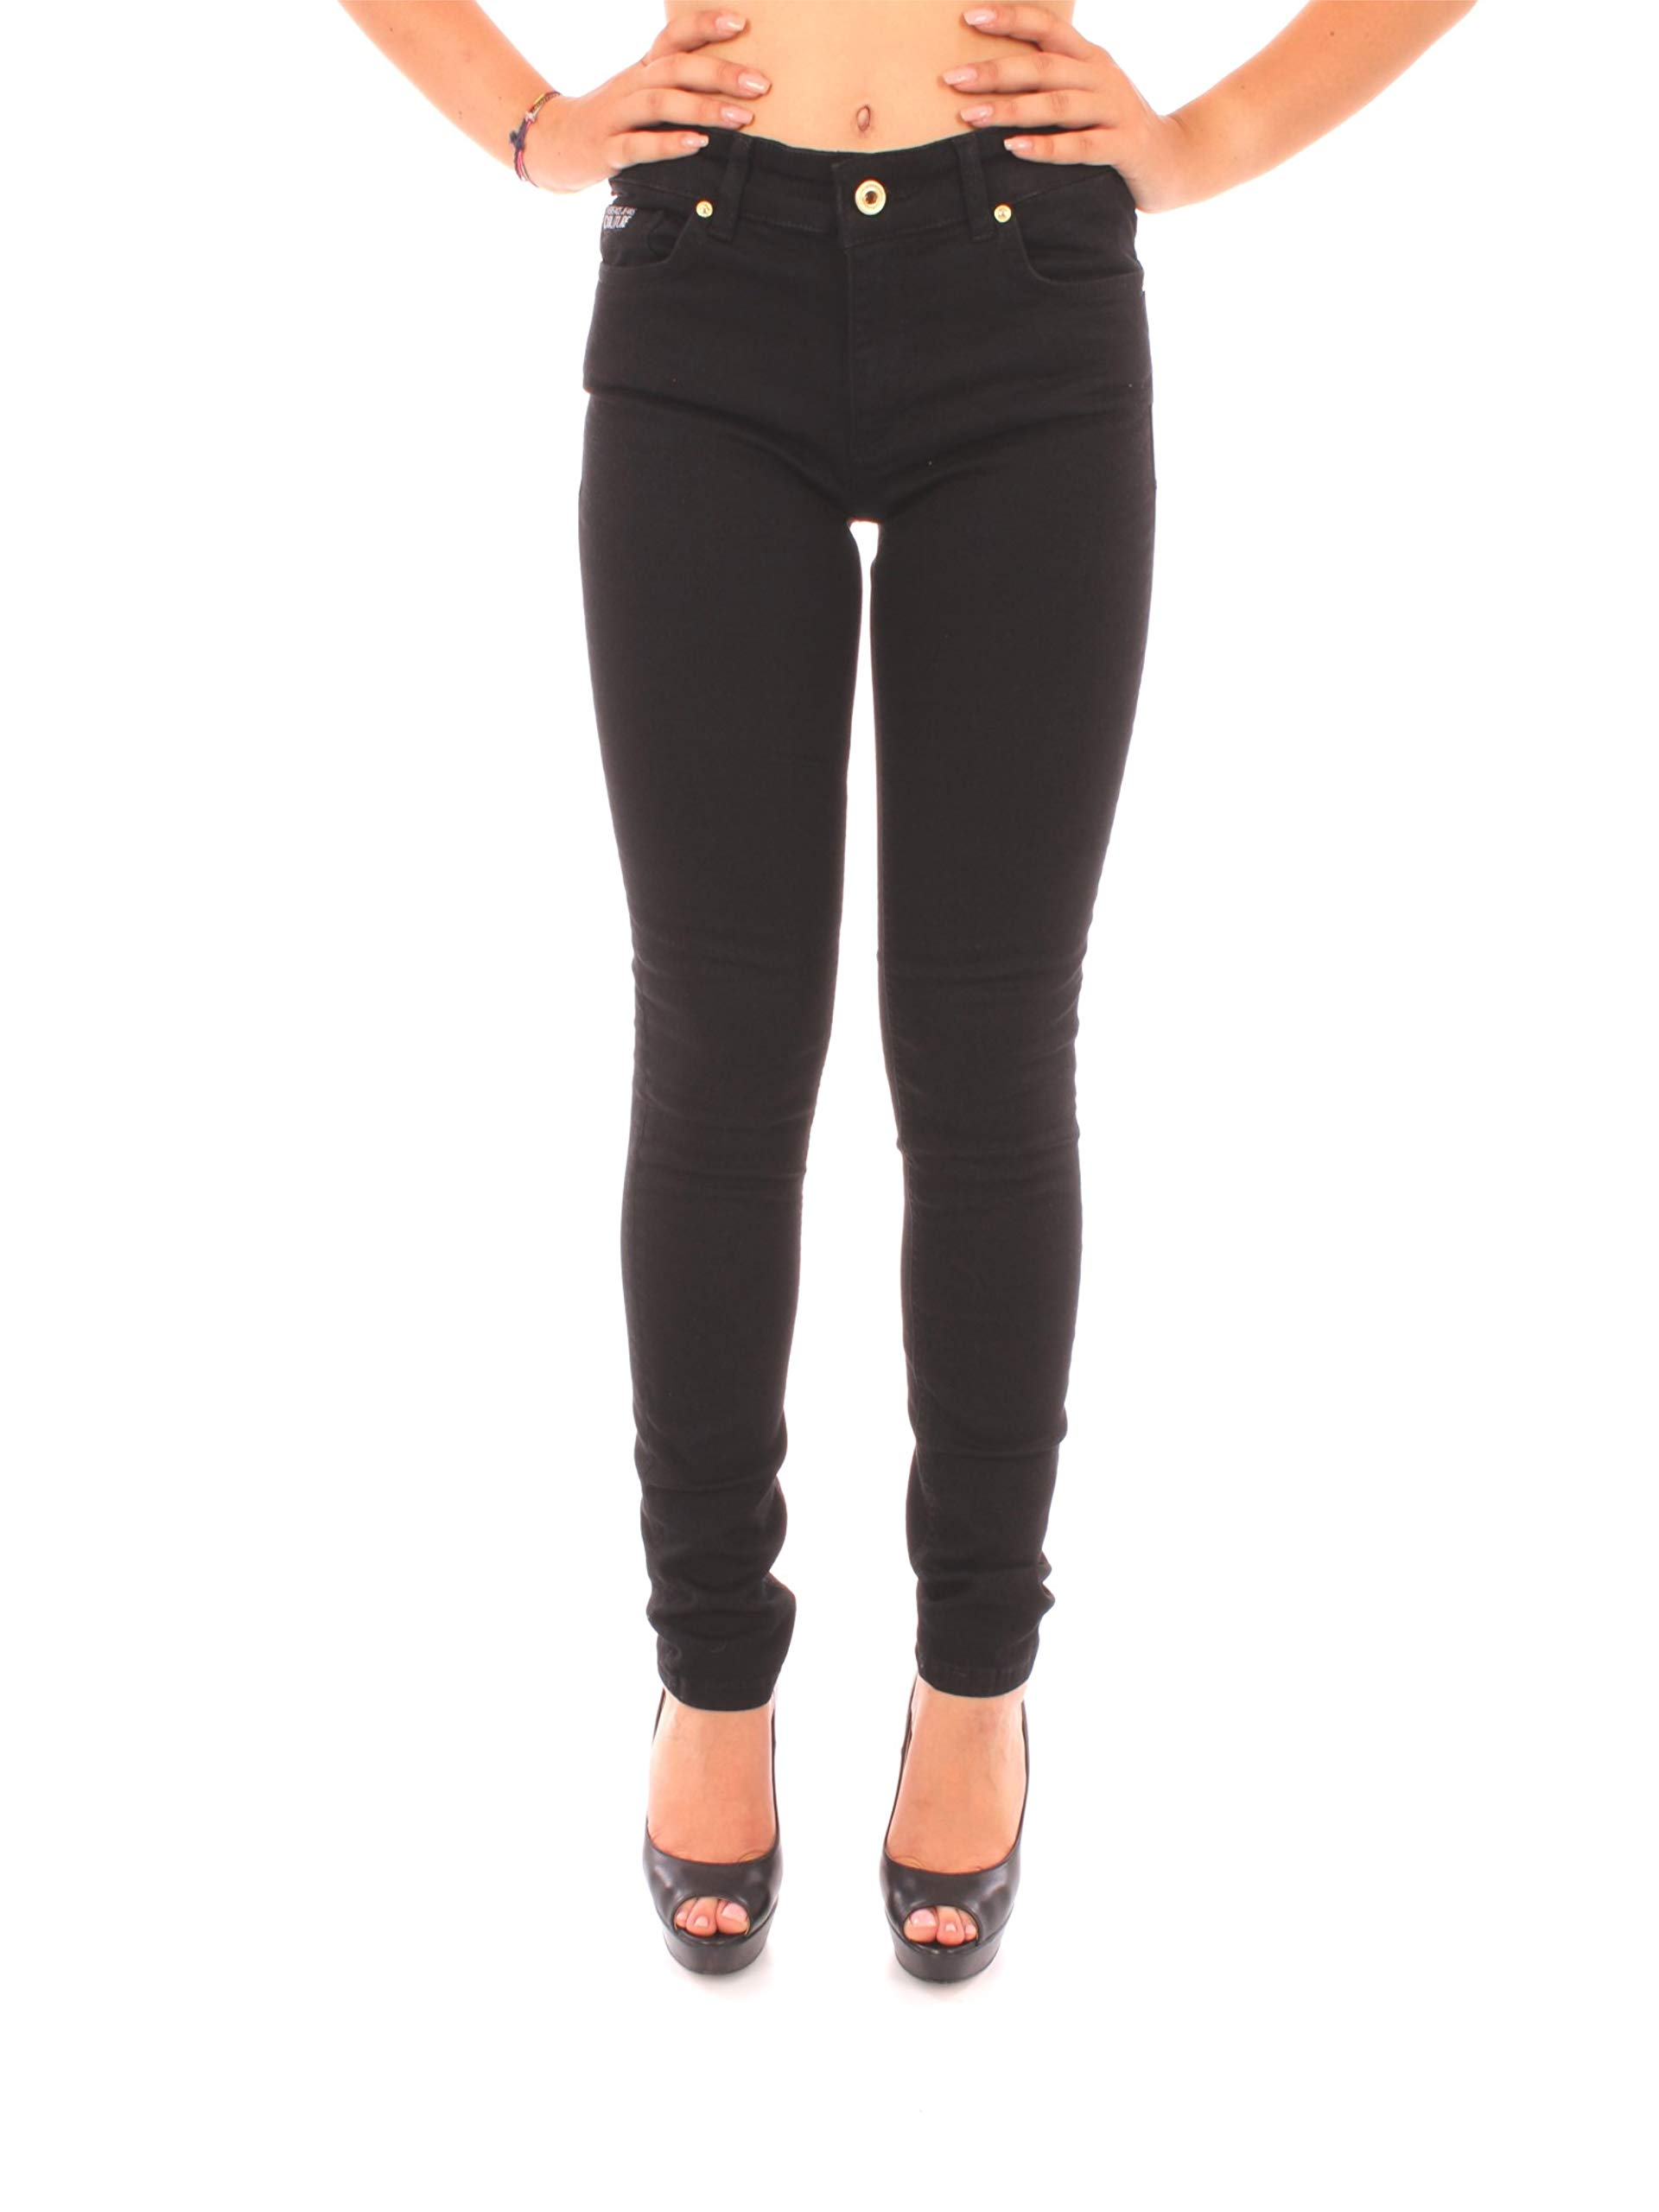 Jeans Jean Fabricant27Femme Trouser Versace Couture 89936taille SkinnyNoirnero Lady vYf6y7bg